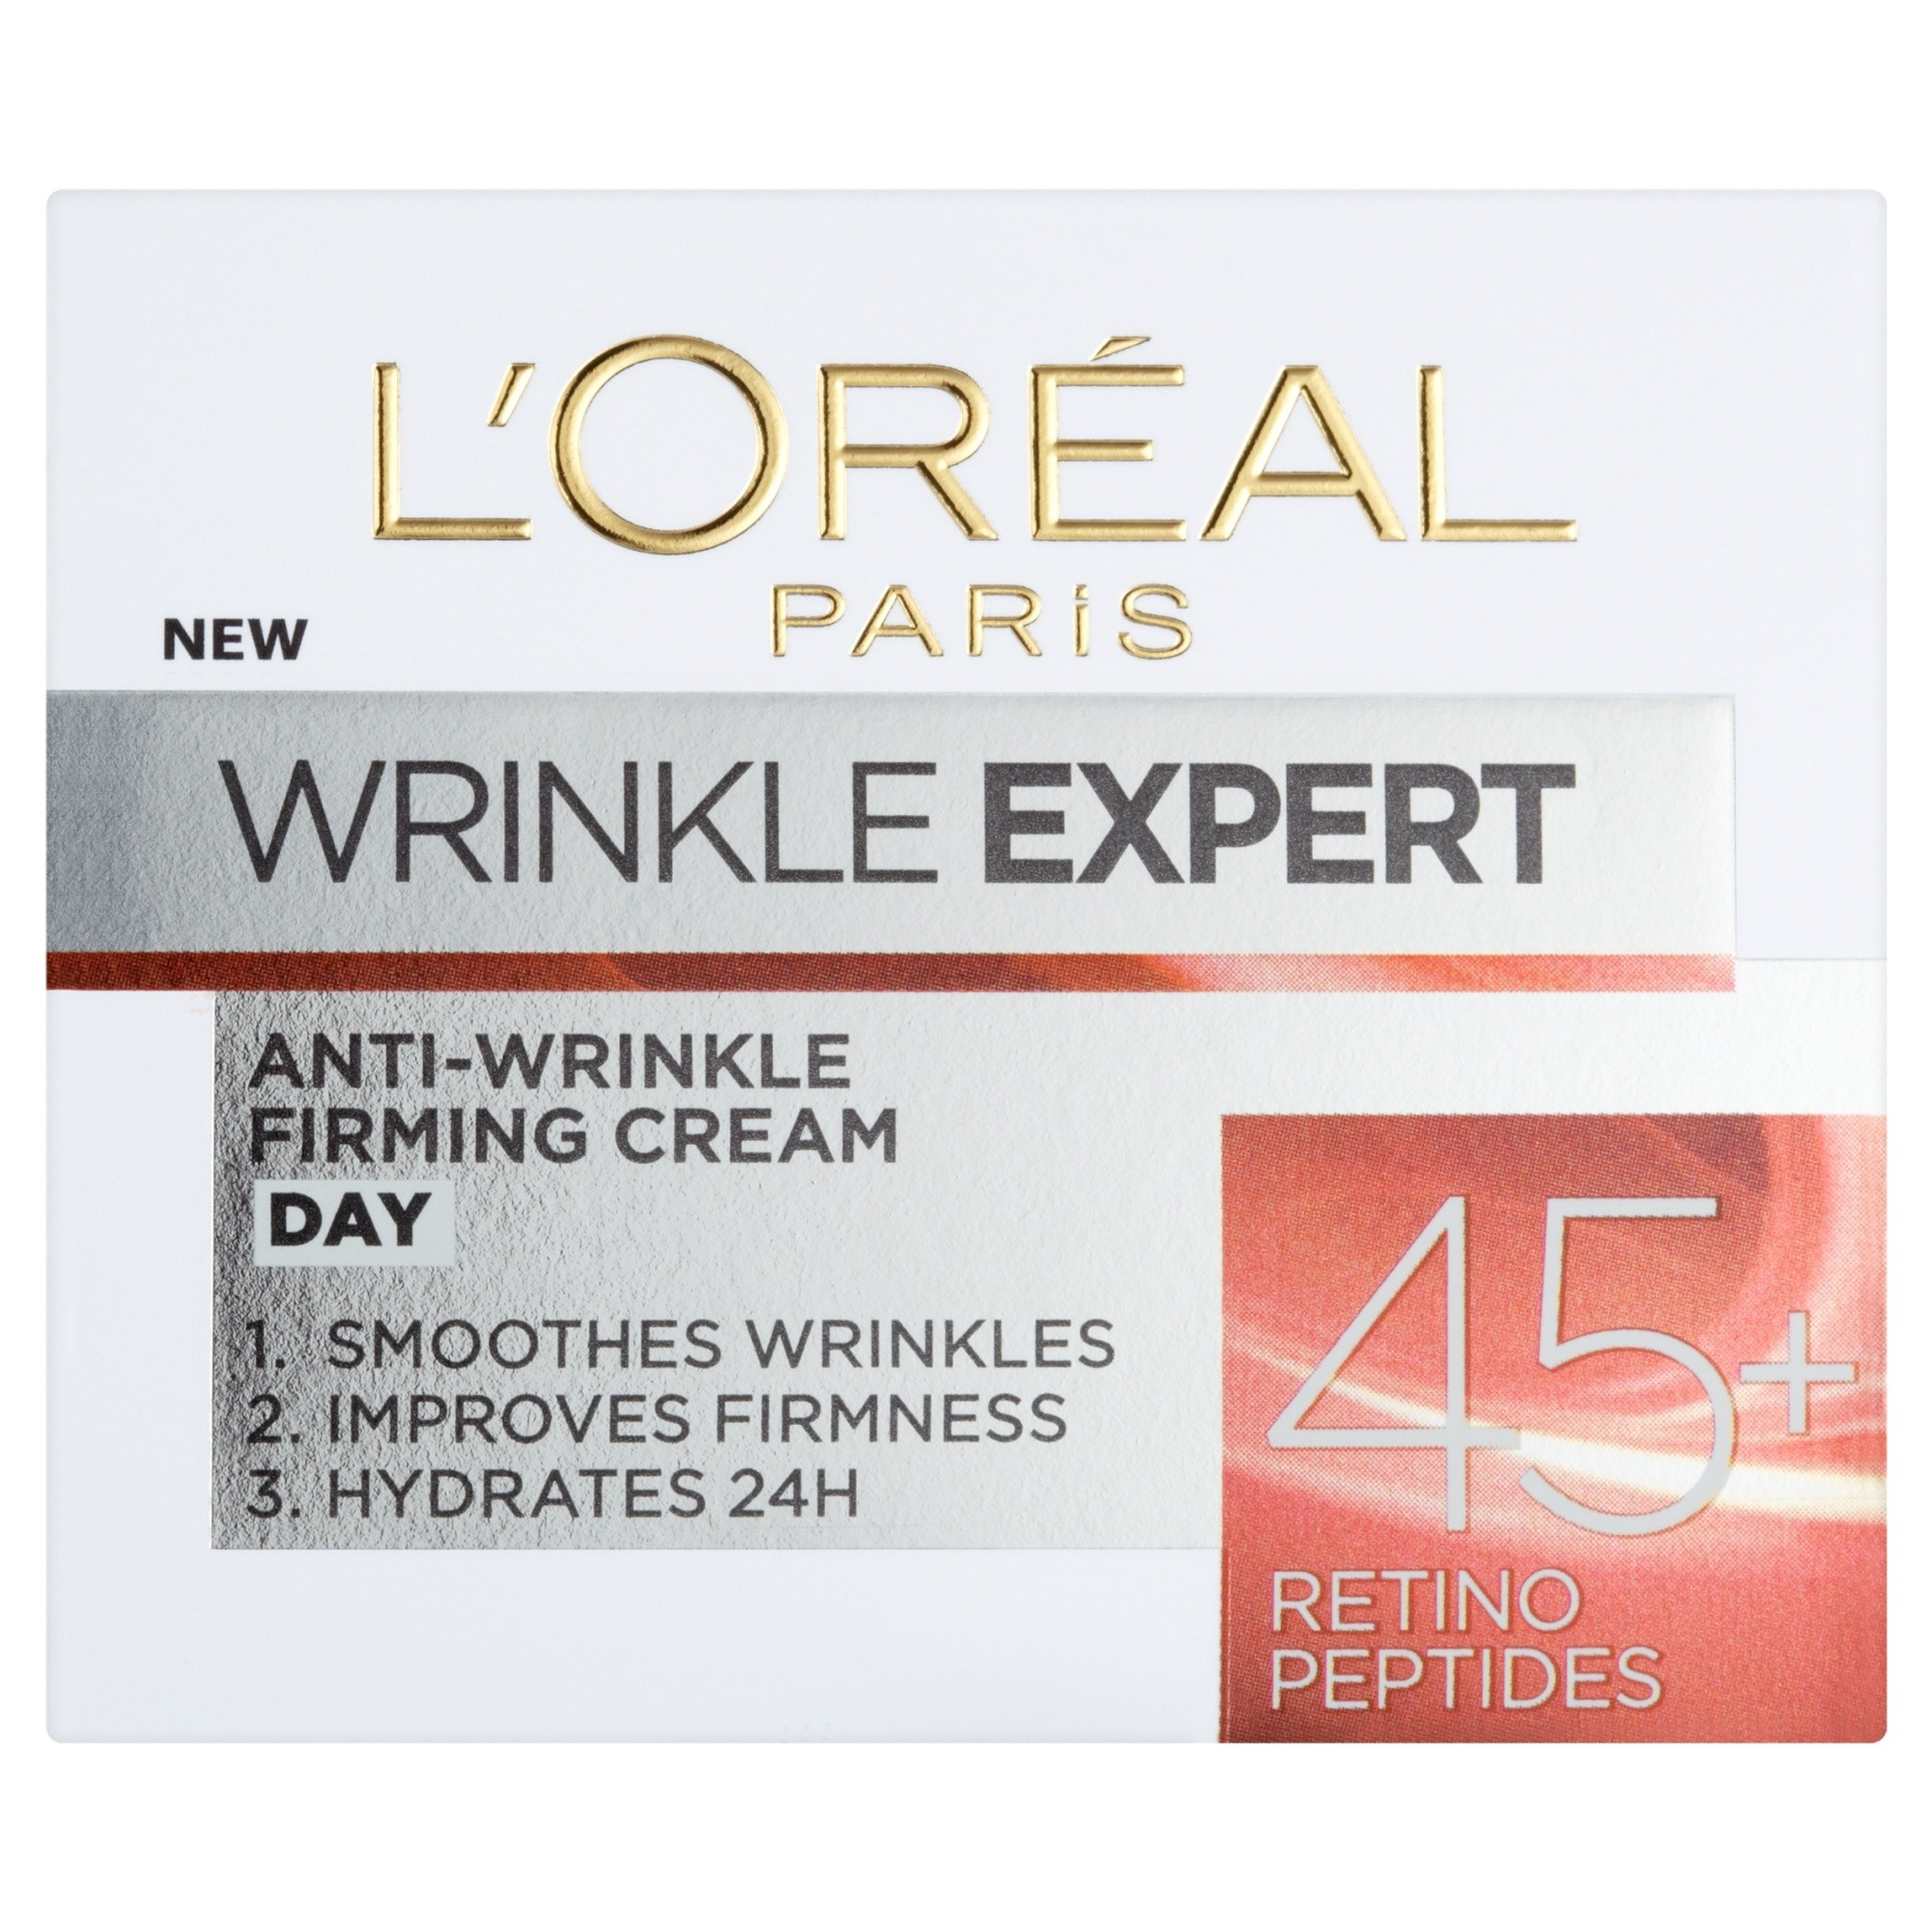 L'Oreal Paris Wrinkle Expert 45+ Firming Day Cream